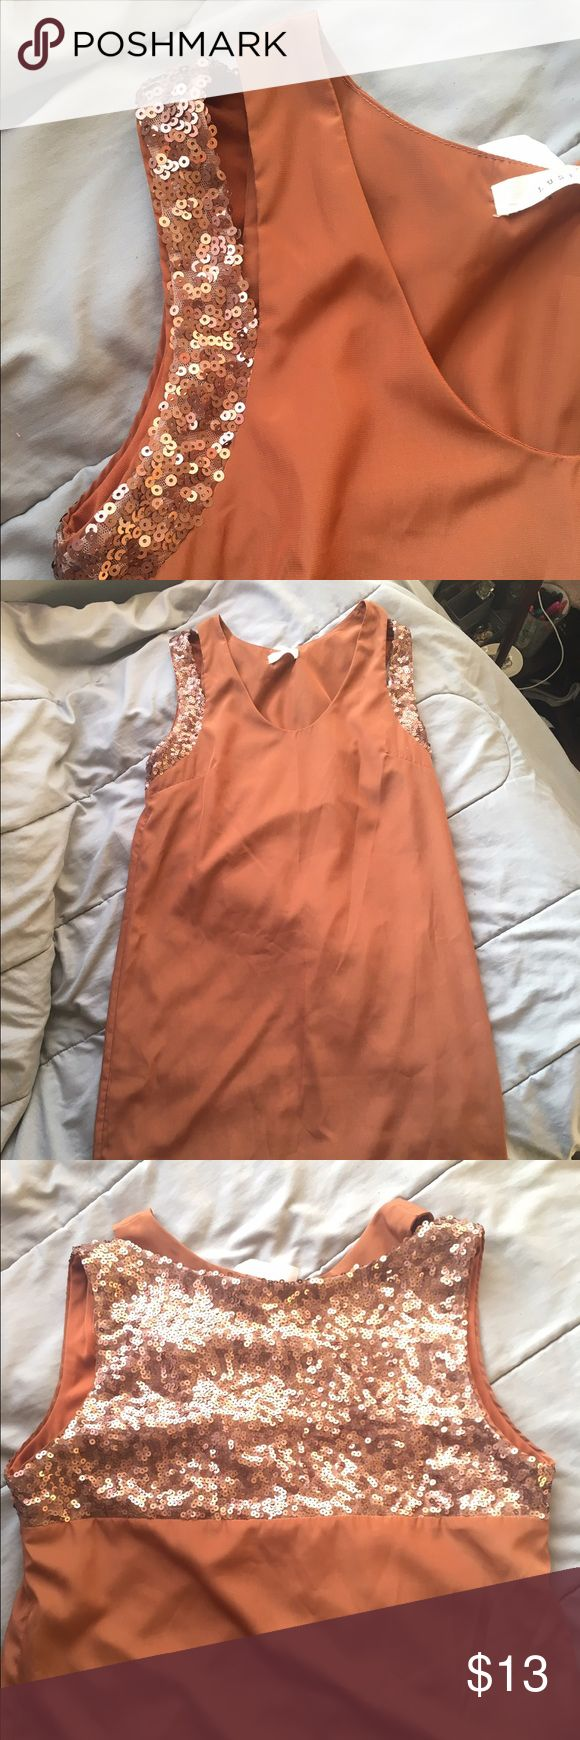 Beautiful brown sequined dress Short brown dress with sequins in the back. Will ship next day. Make an offer.  *not from Windsor* WINDSOR Dresses